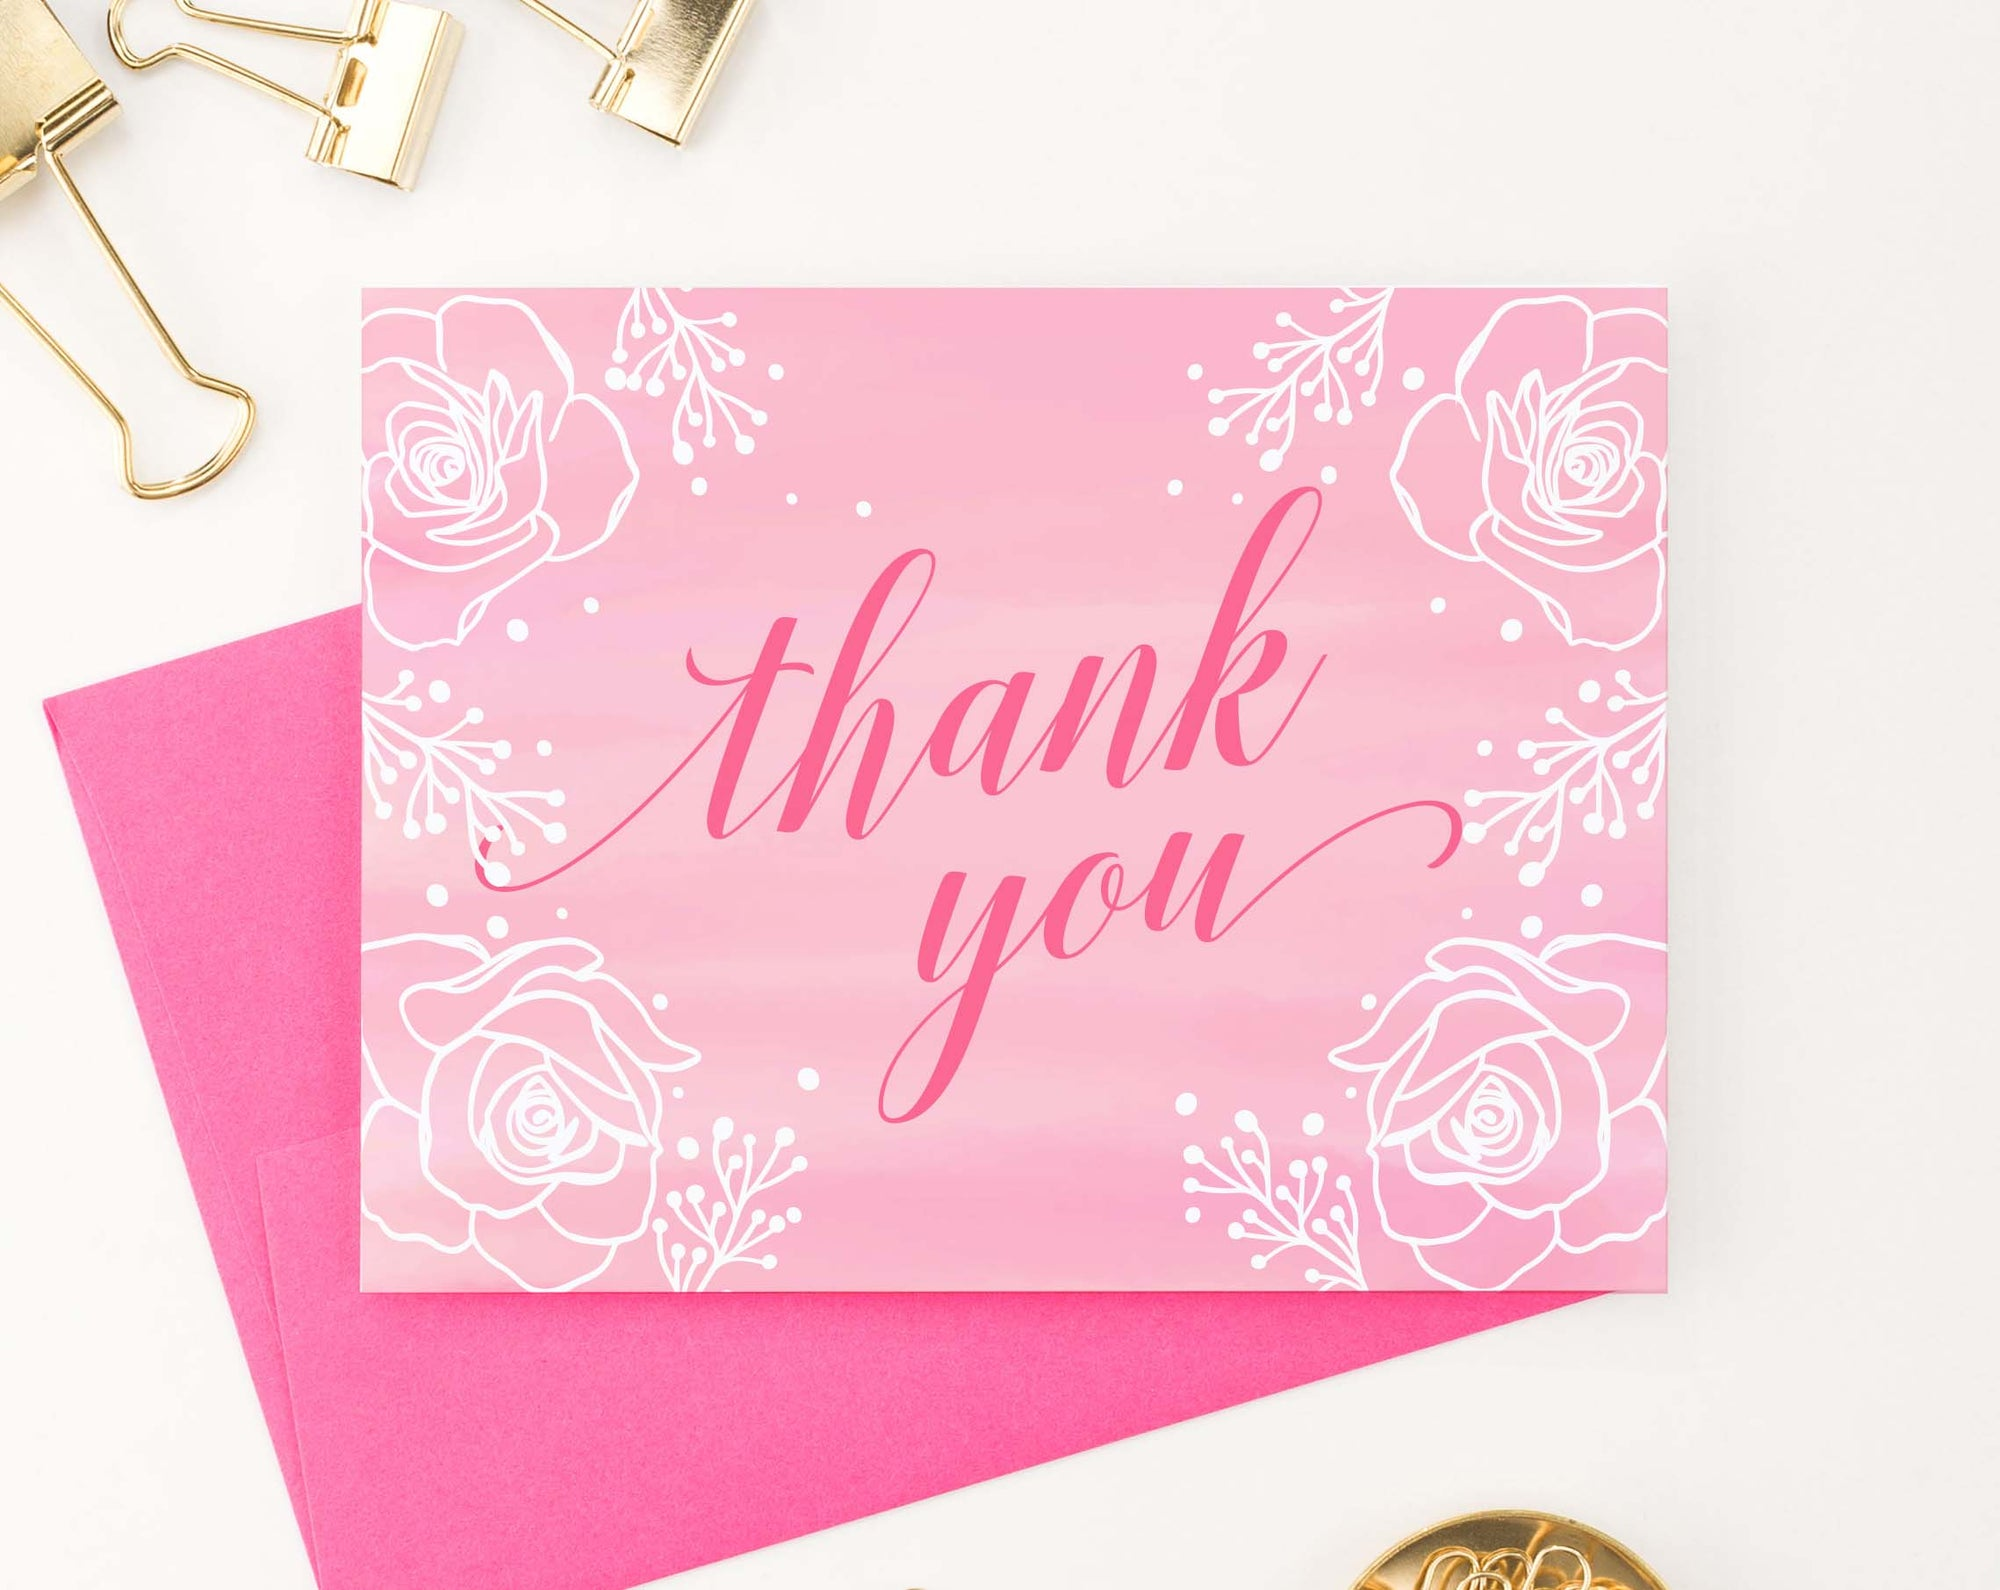 TY075 pink thank you cards with white florals cute elegant flowers thankyou